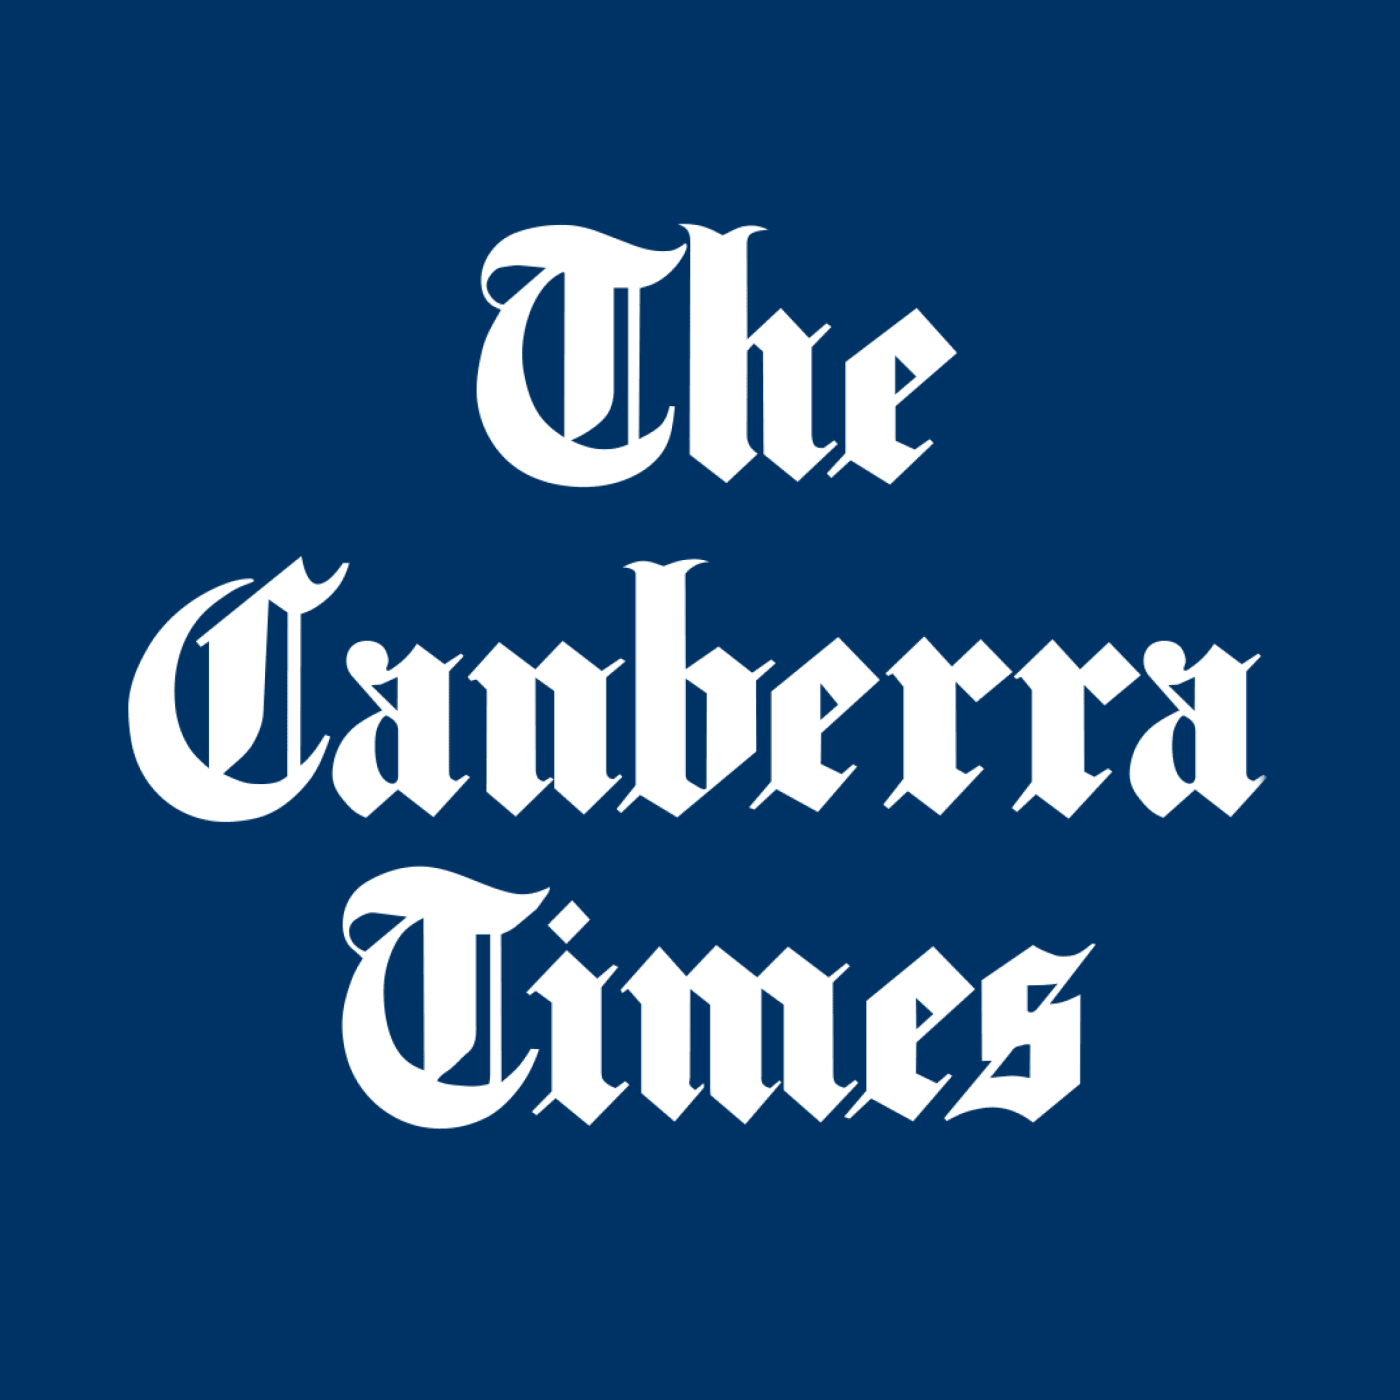 The Canberra Times Today logo